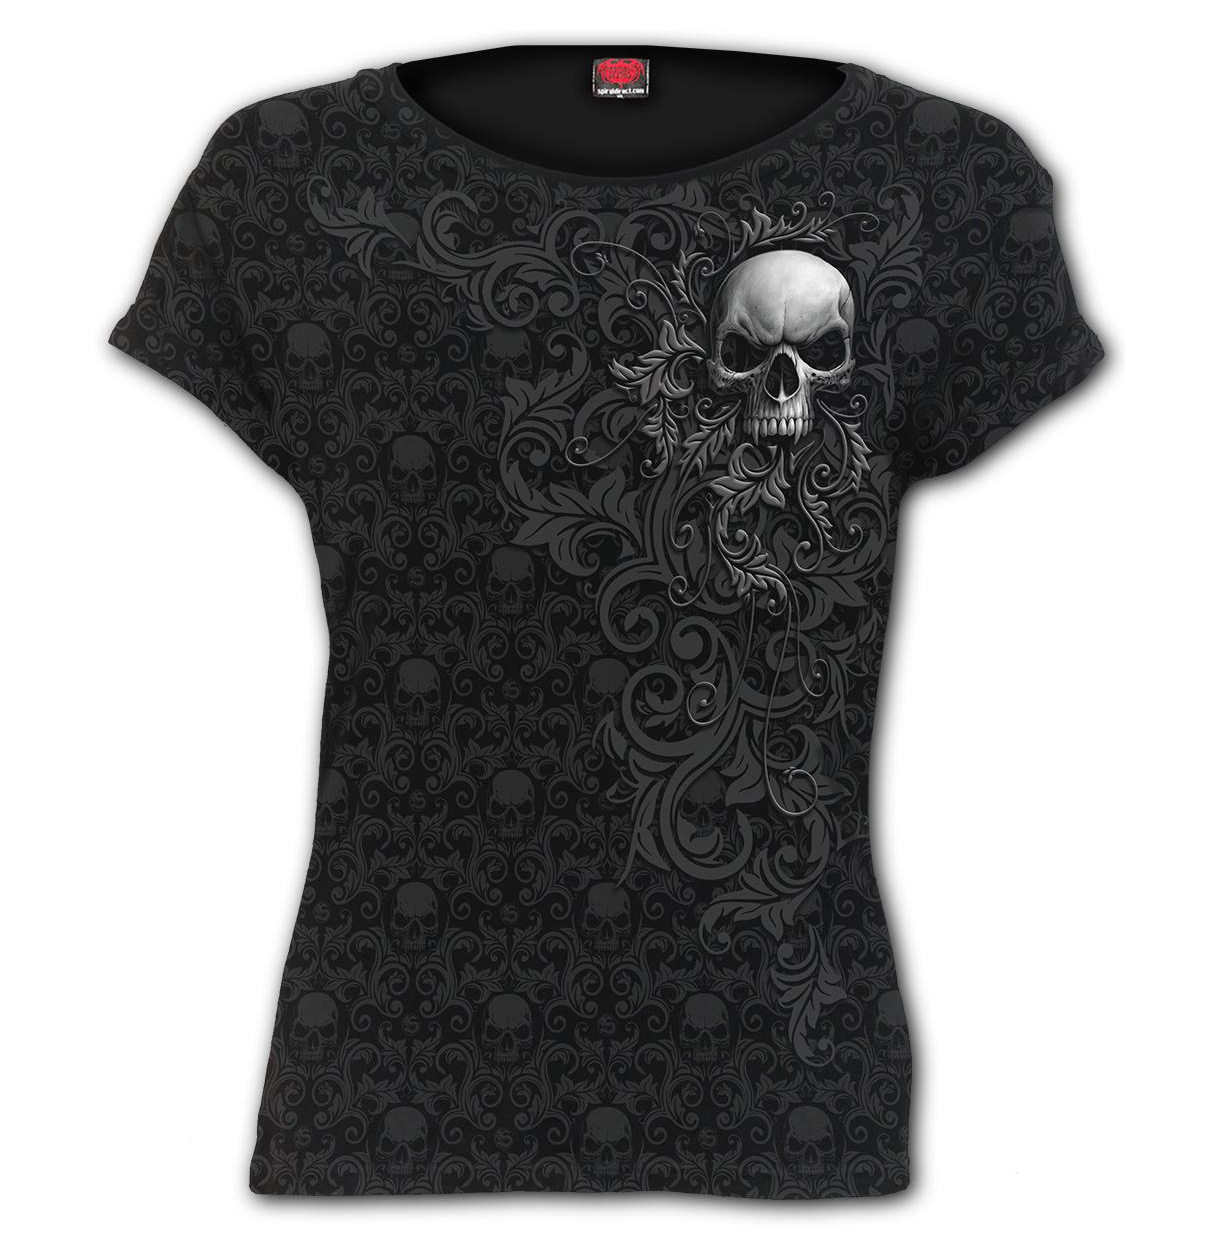 Spiral-Direct-Ladies-Black-Gothic-SKULL-SCROLL-Impression-T-Shirt-Top-All-Sizes thumbnail 3